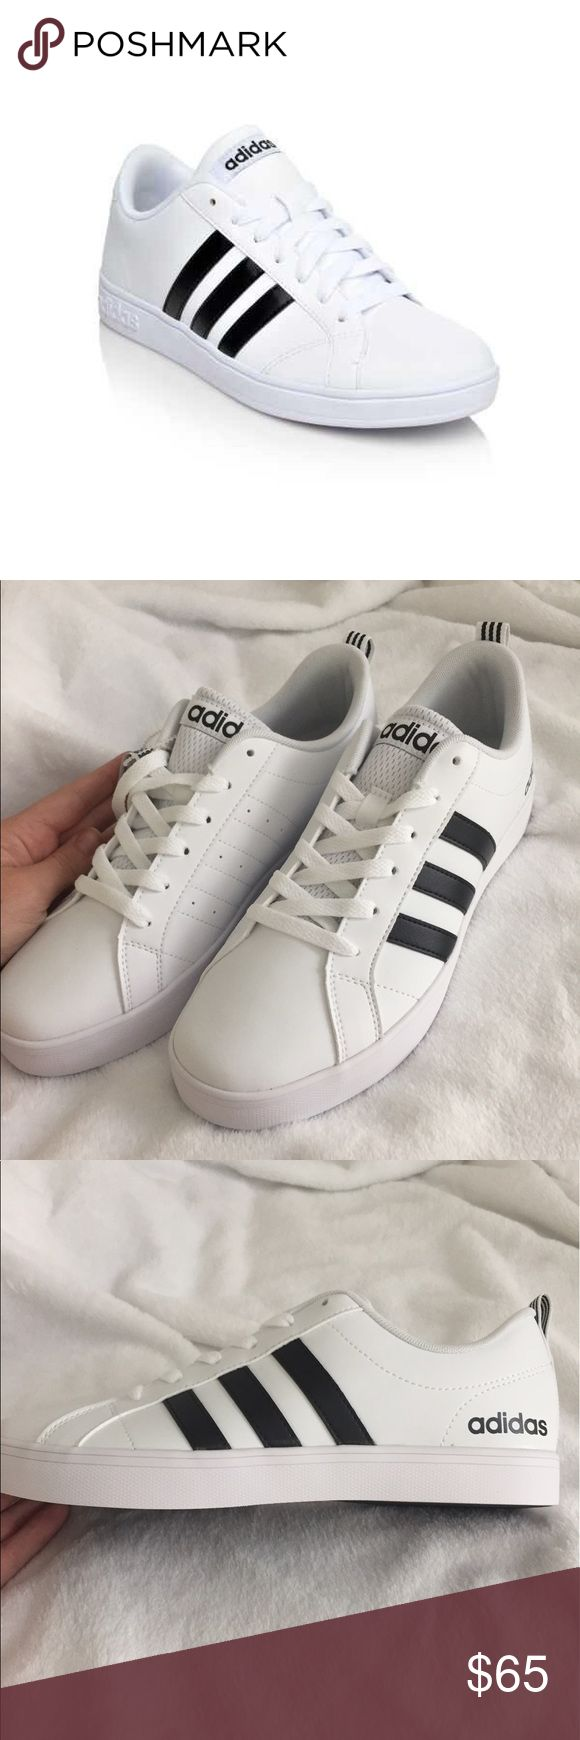 Adidas Neo Sneakers Brand new in box. Perfect condition. Very in style right now. Adidas Shoes Sneakers